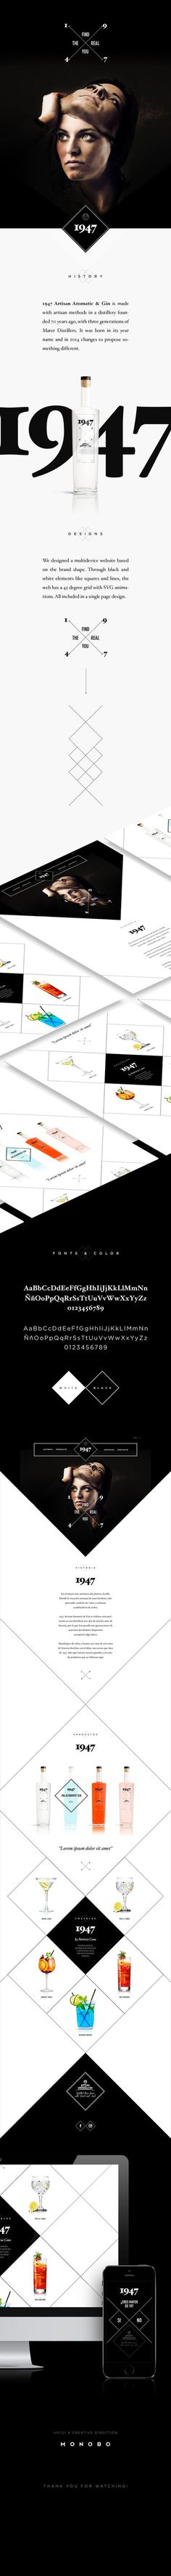 1947 is an Spanish Gin multidevice website based on the brand shape. Through black and white elements like squares and lines, the web has a